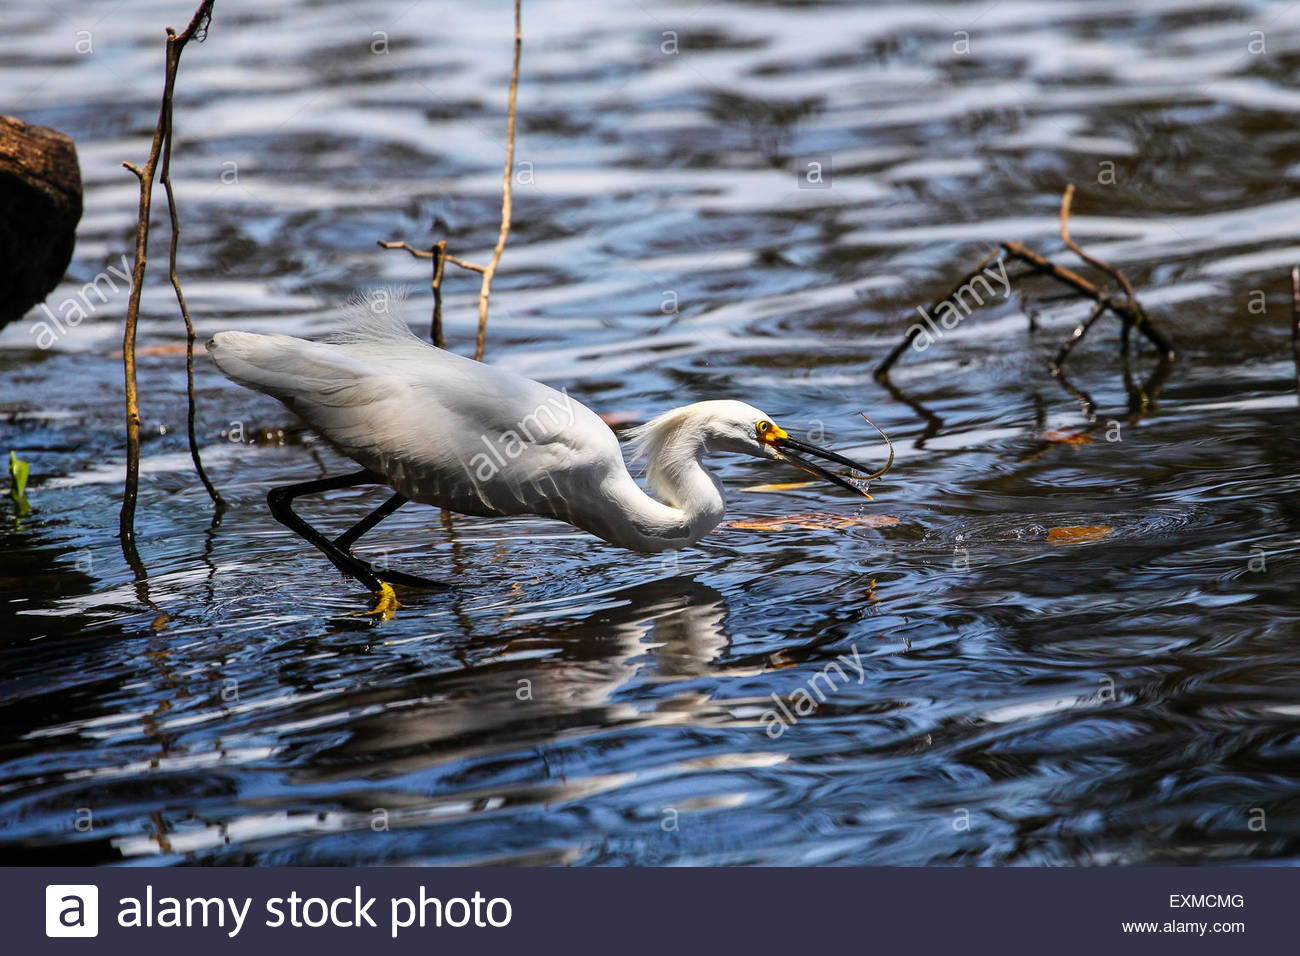 Snowy egret at Tortuguero National Park, Costa Rica. - Stock Image